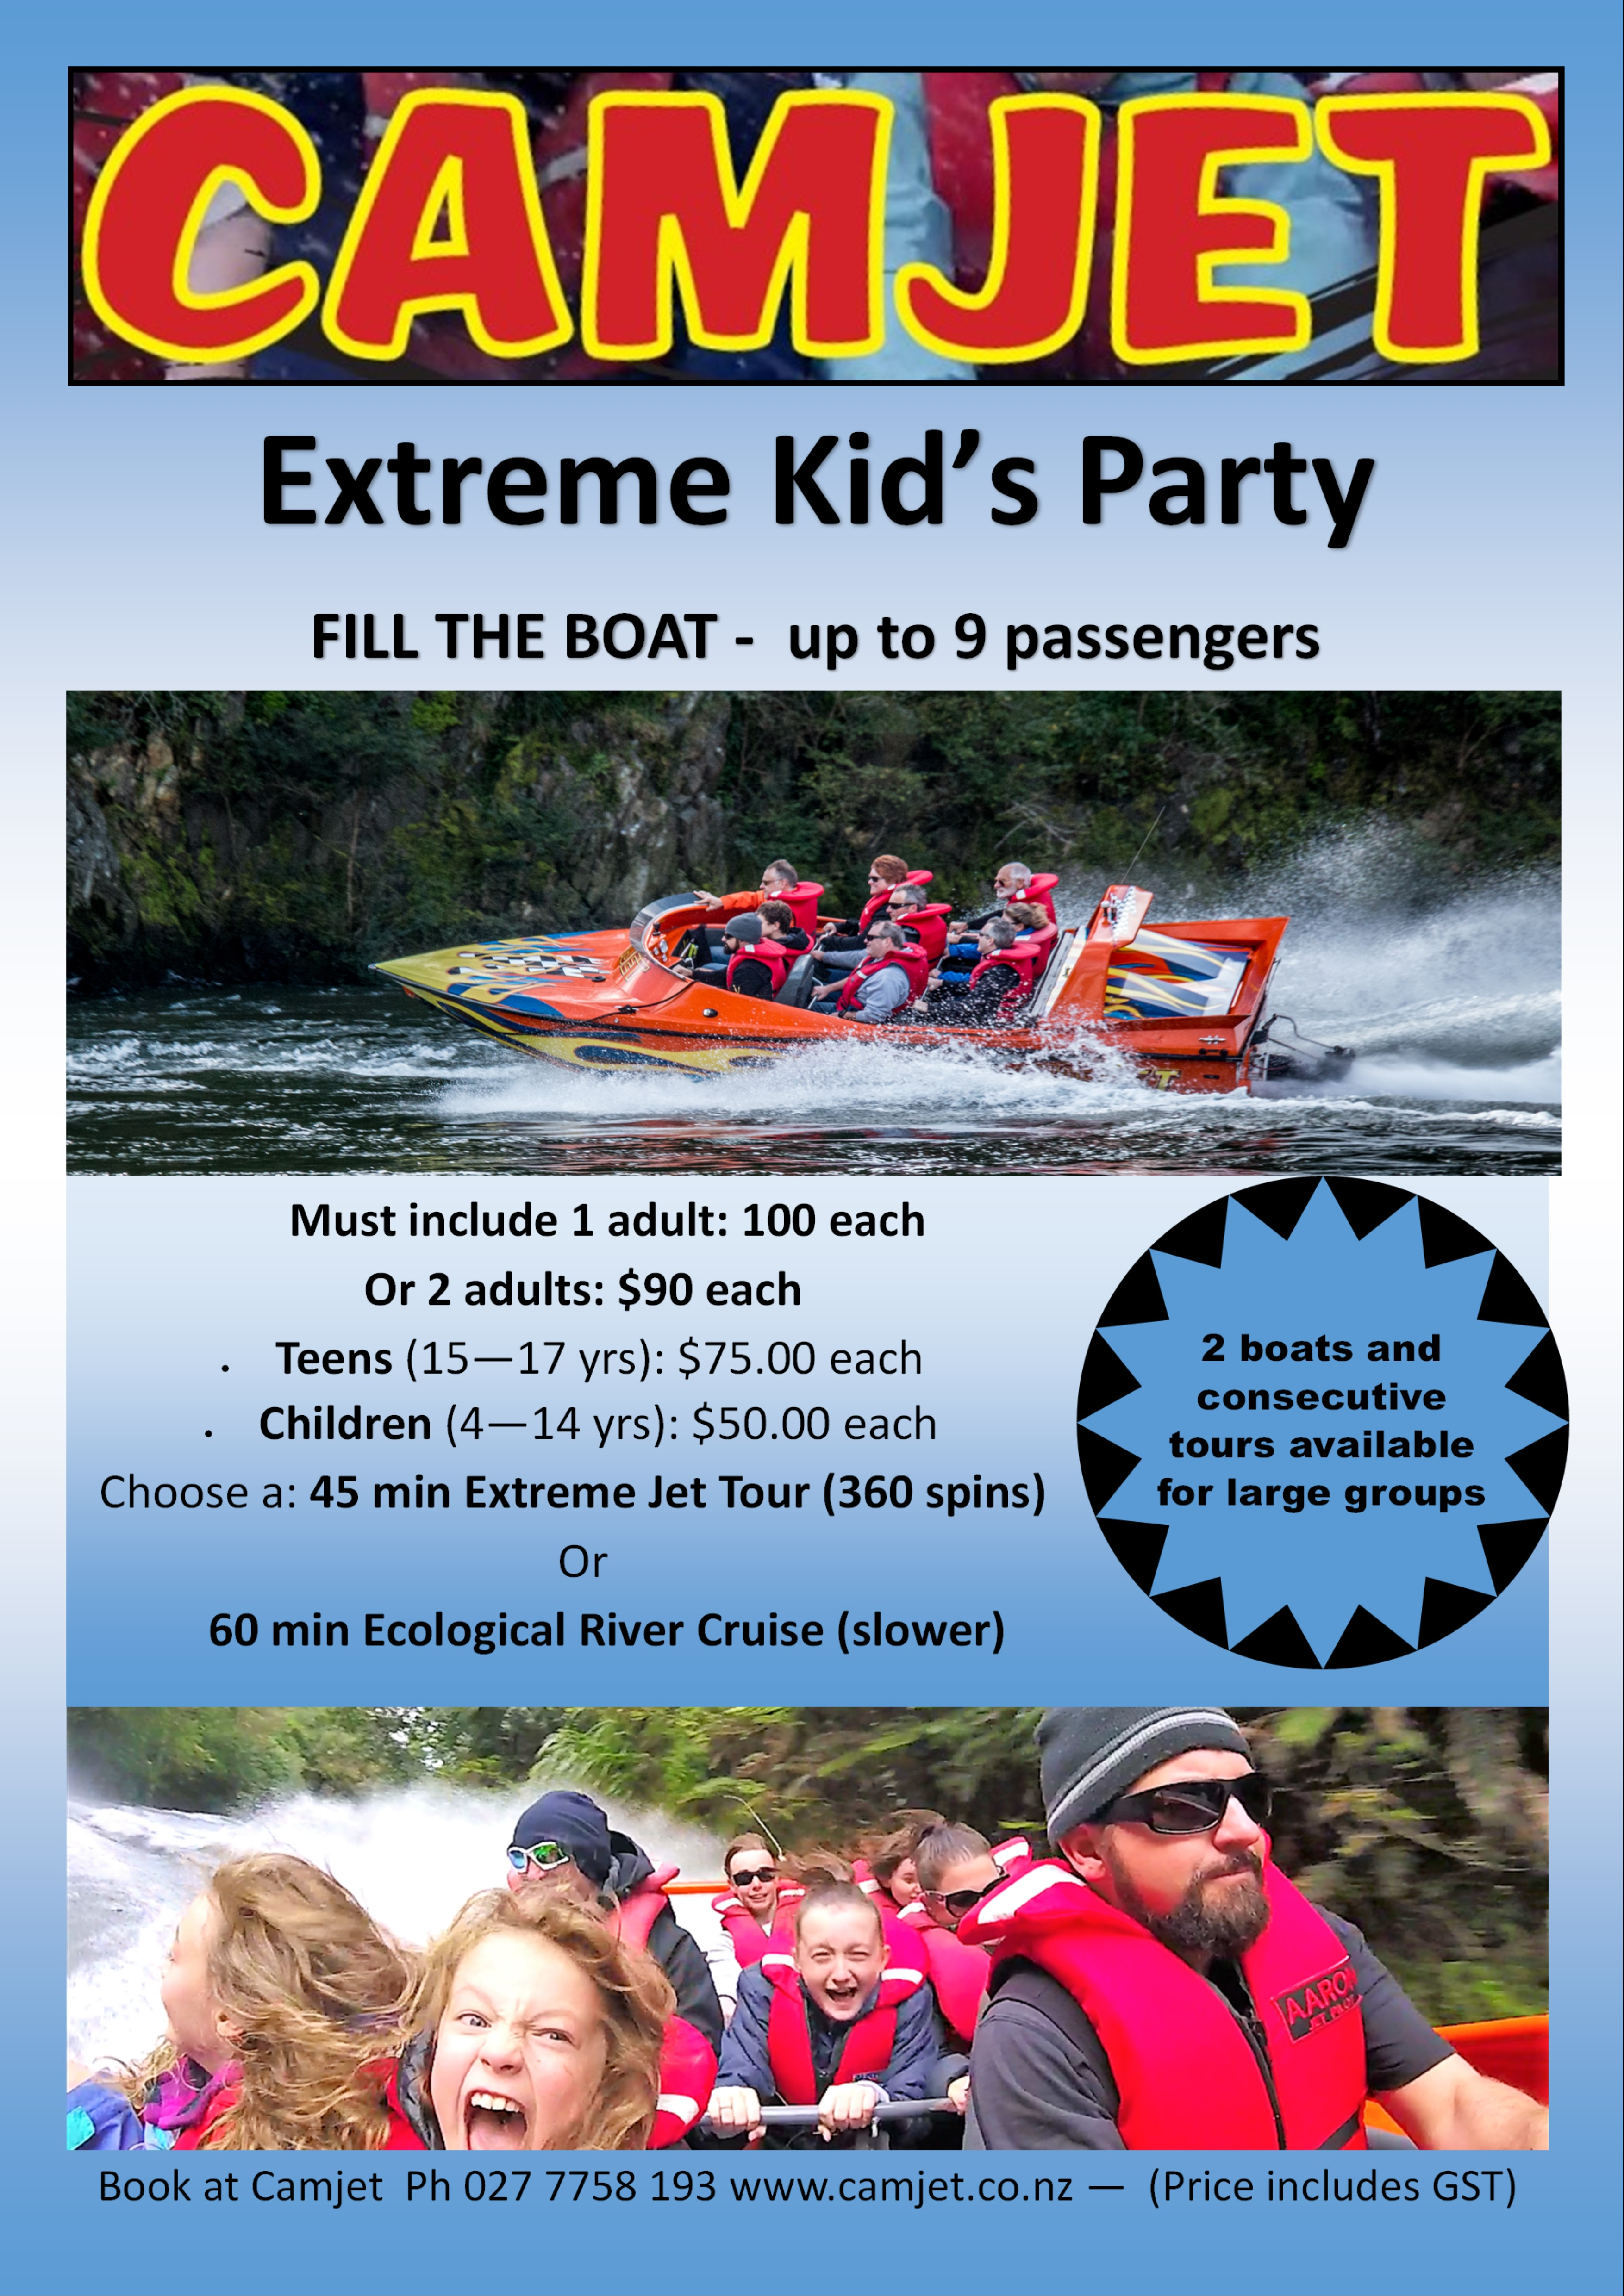 Camjet-Extreme-kids-party-deal